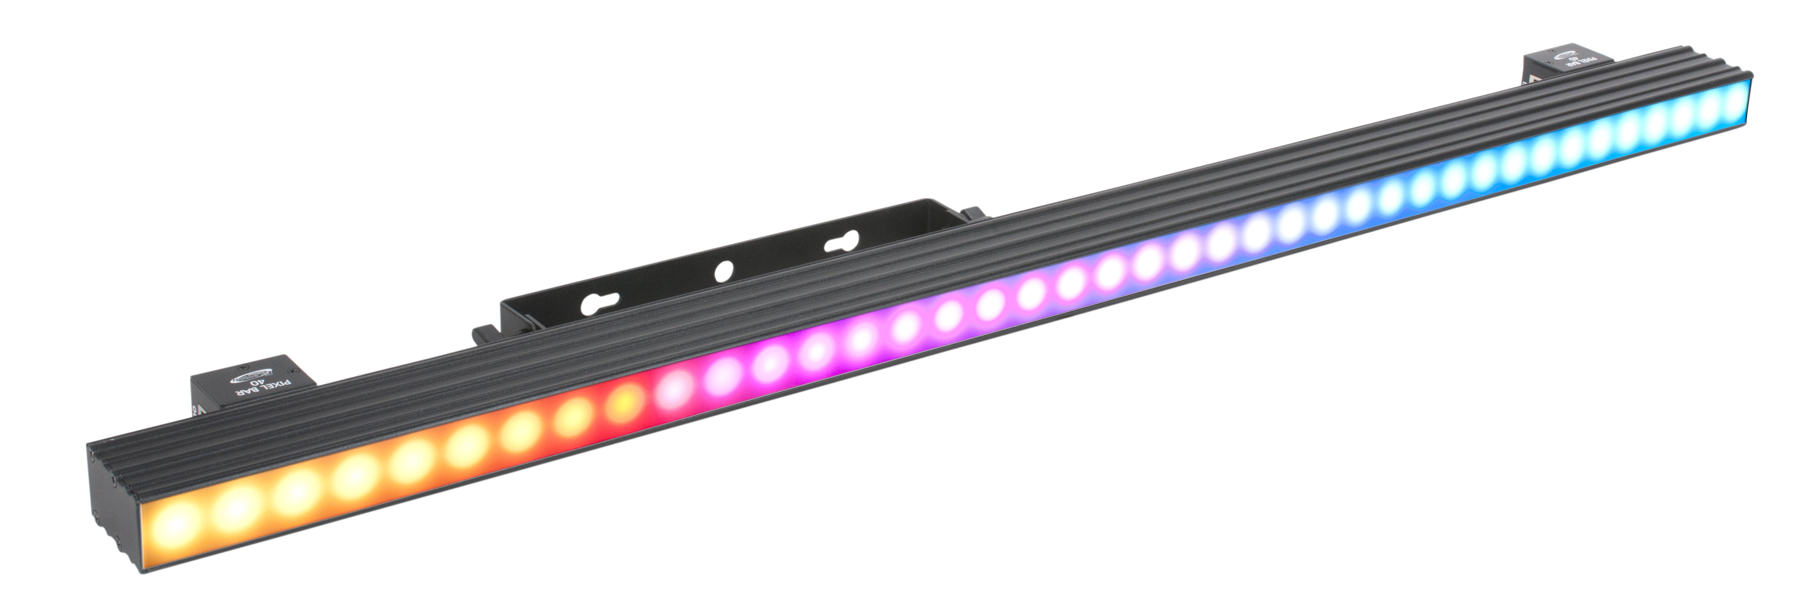 american lighting luc 16 led contrax 16 1 2 led american dj pixel bar 20 3 in 1 smd led 60 dmx channel 131